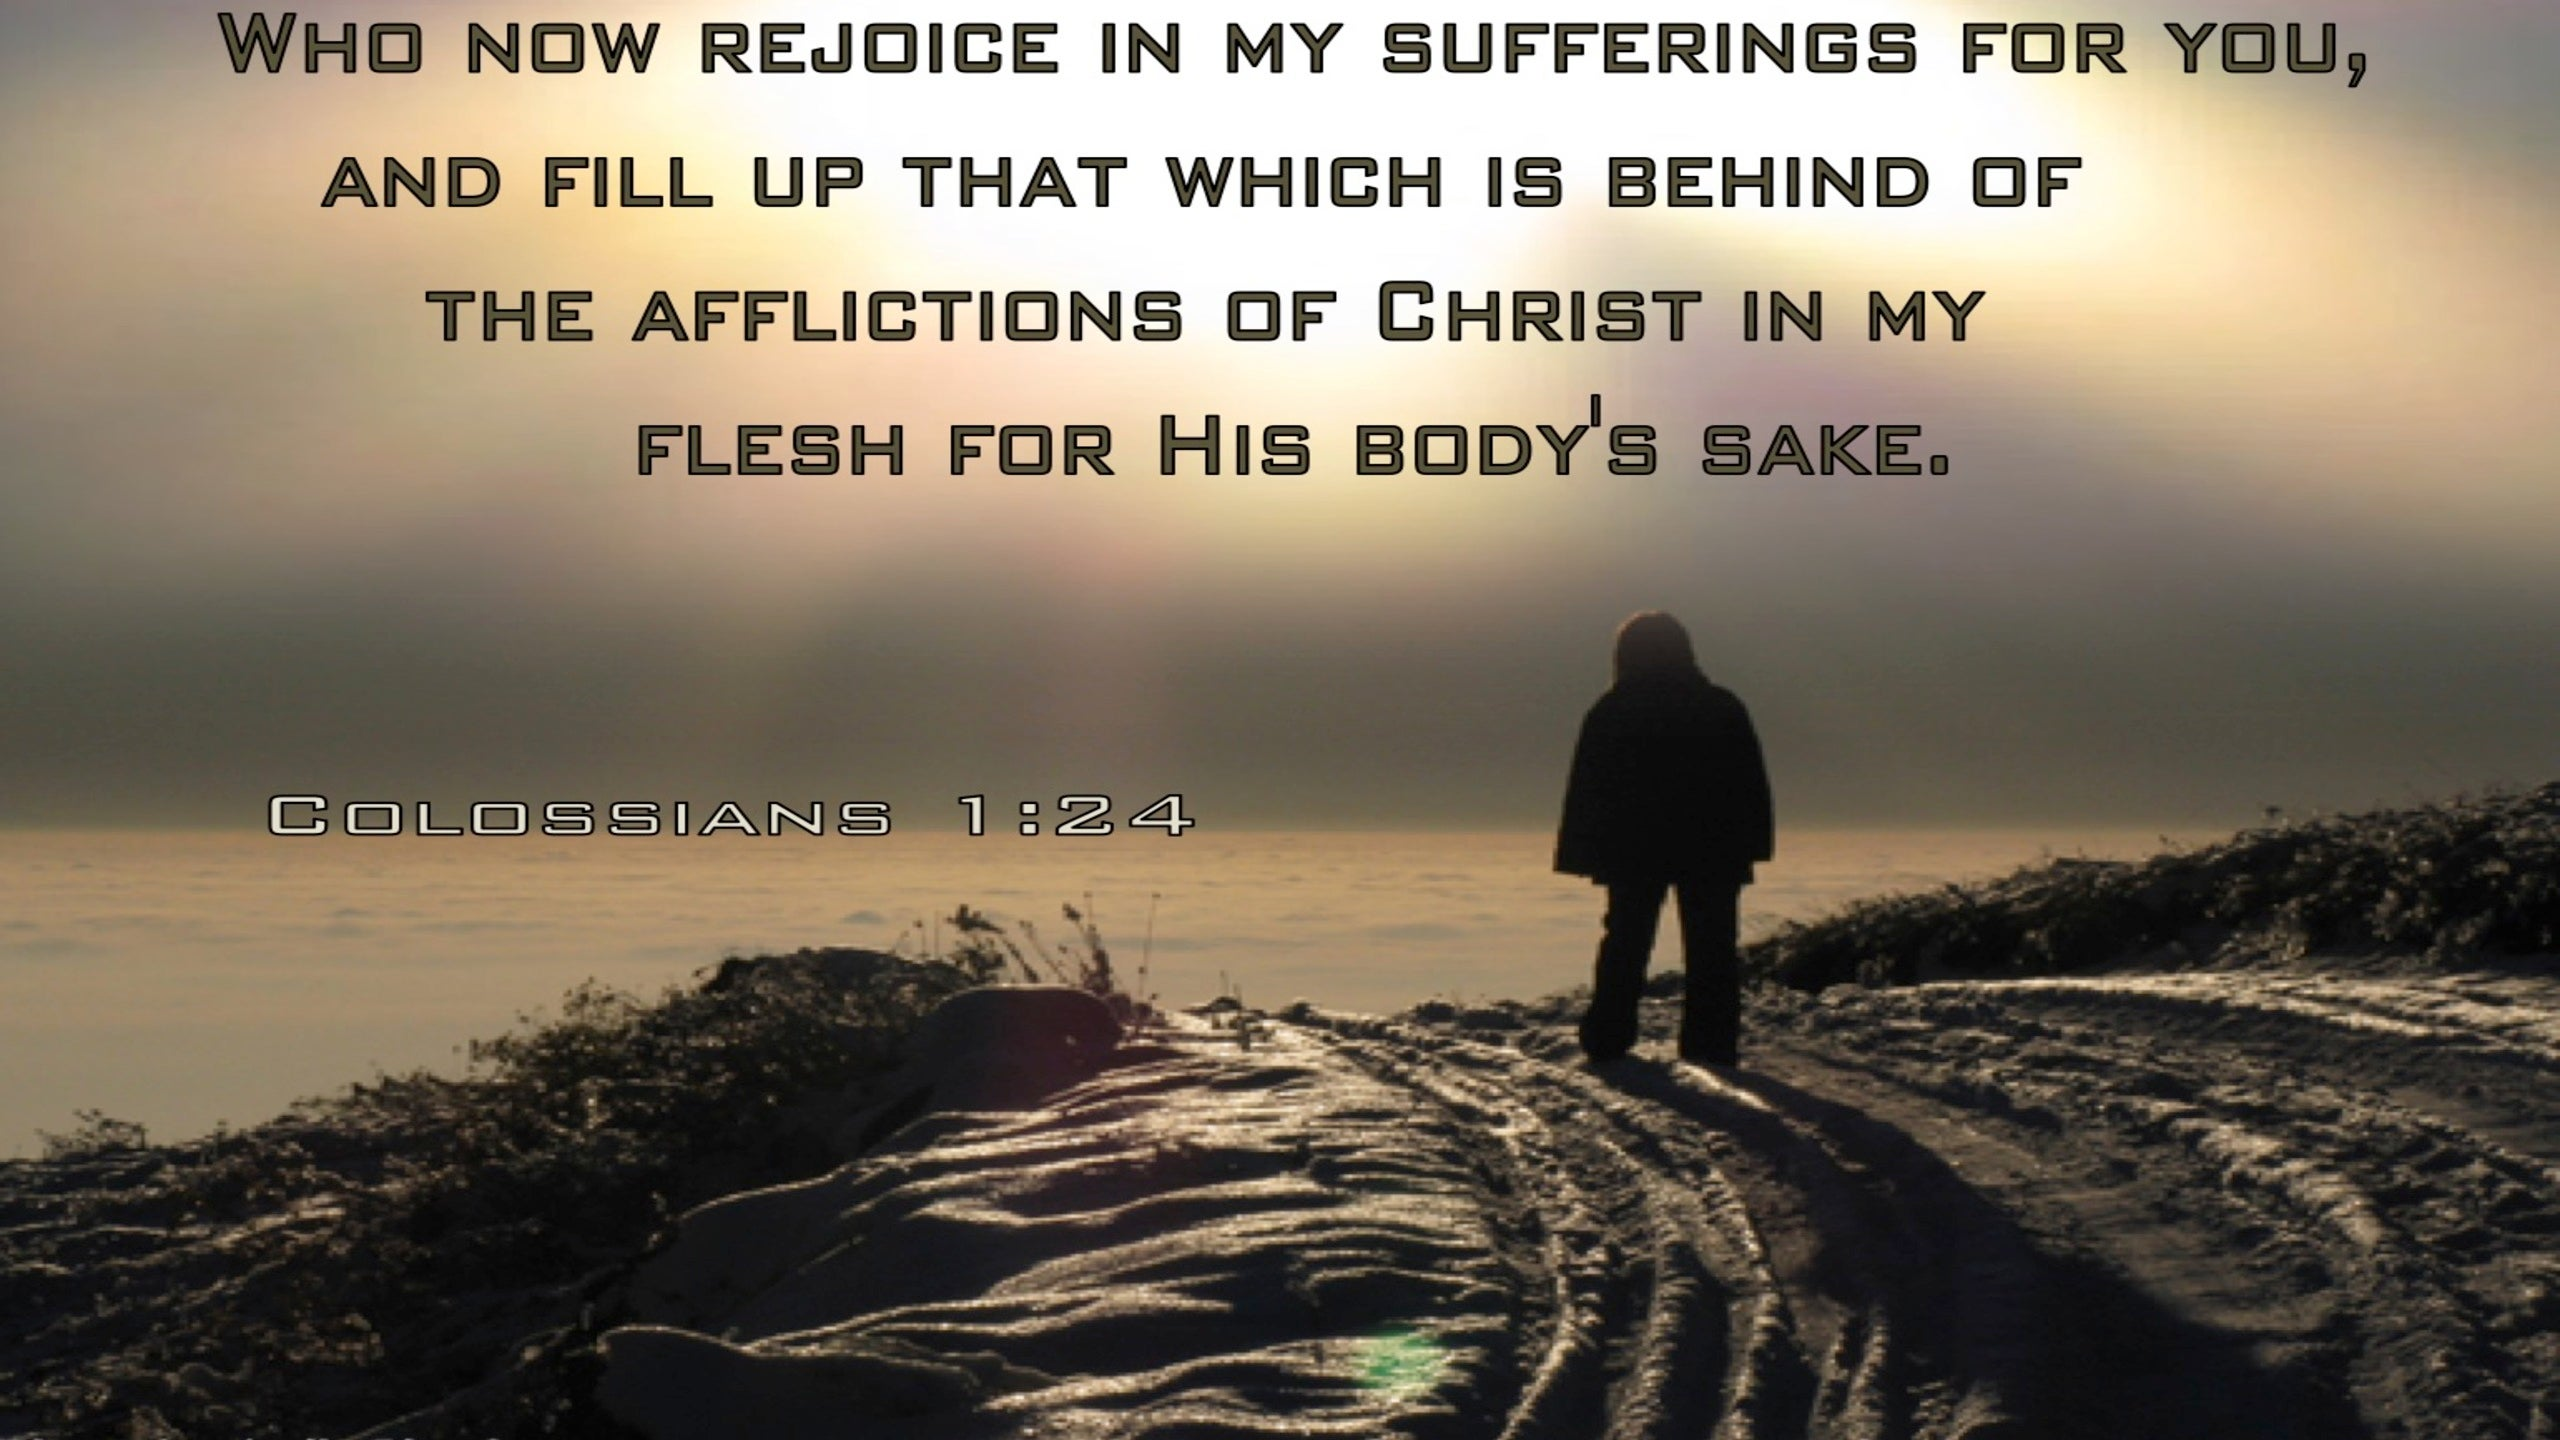 Colossians 1:24 Fill Up That Which Is Behind Of The Afflictions Of Christ In My Flesh (utmost)09:30